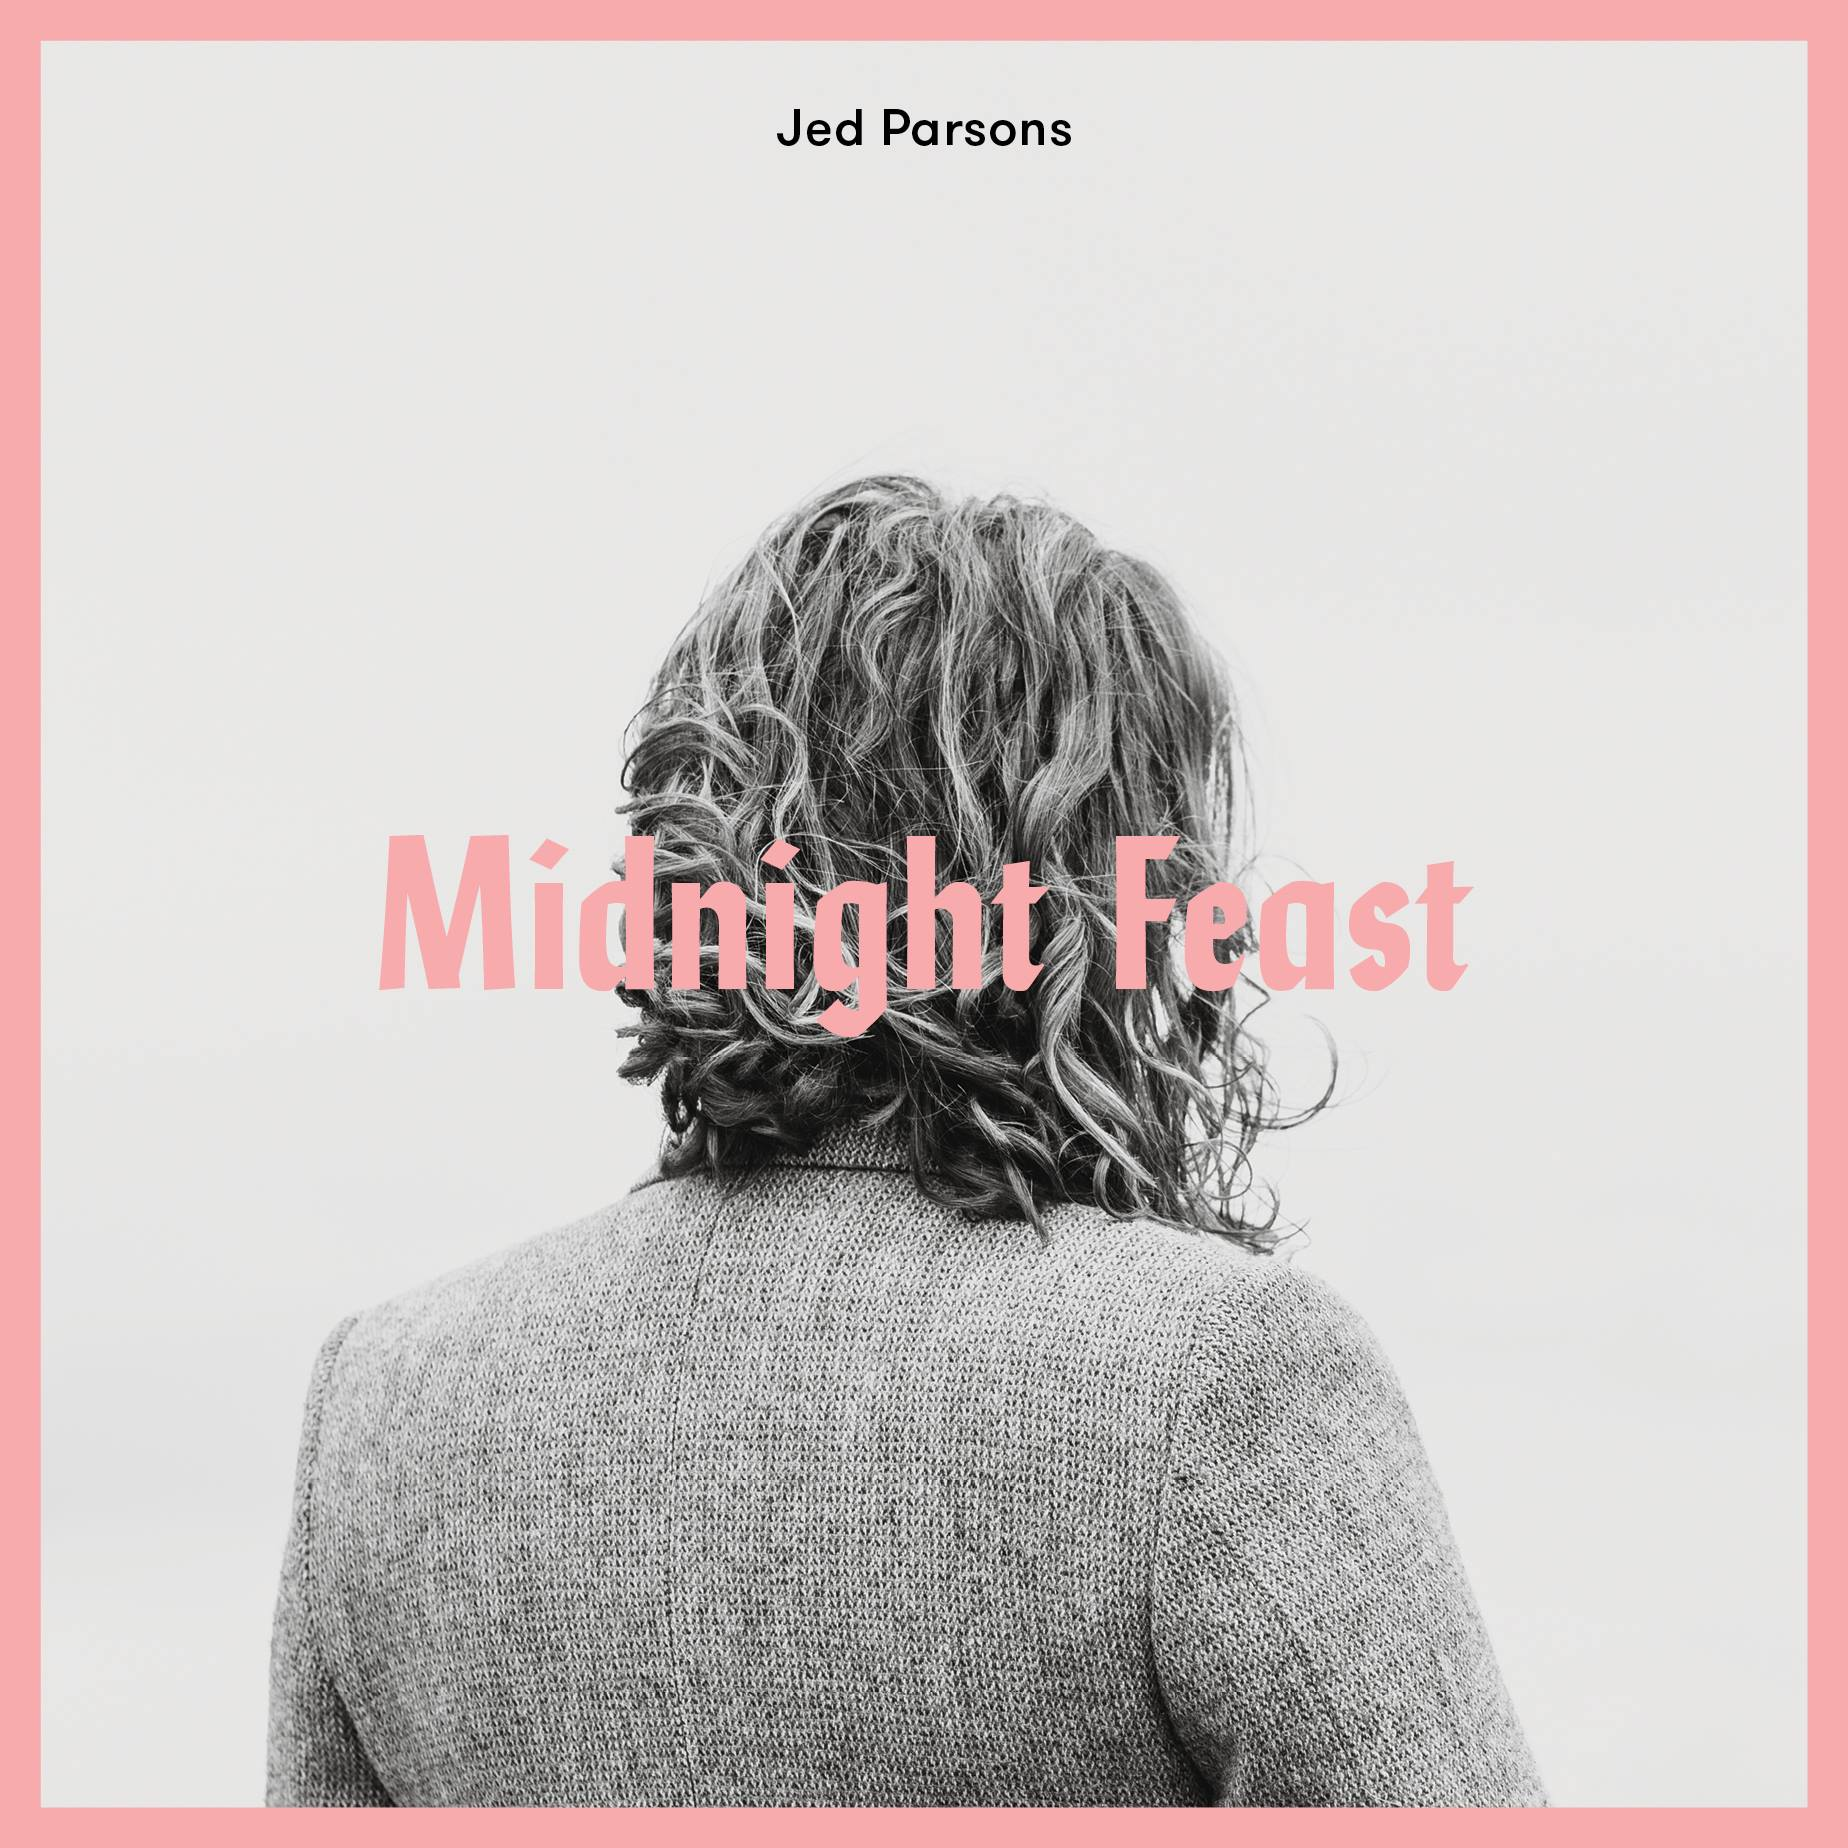 Jed Parsons 'Midnight Feast' Album Release